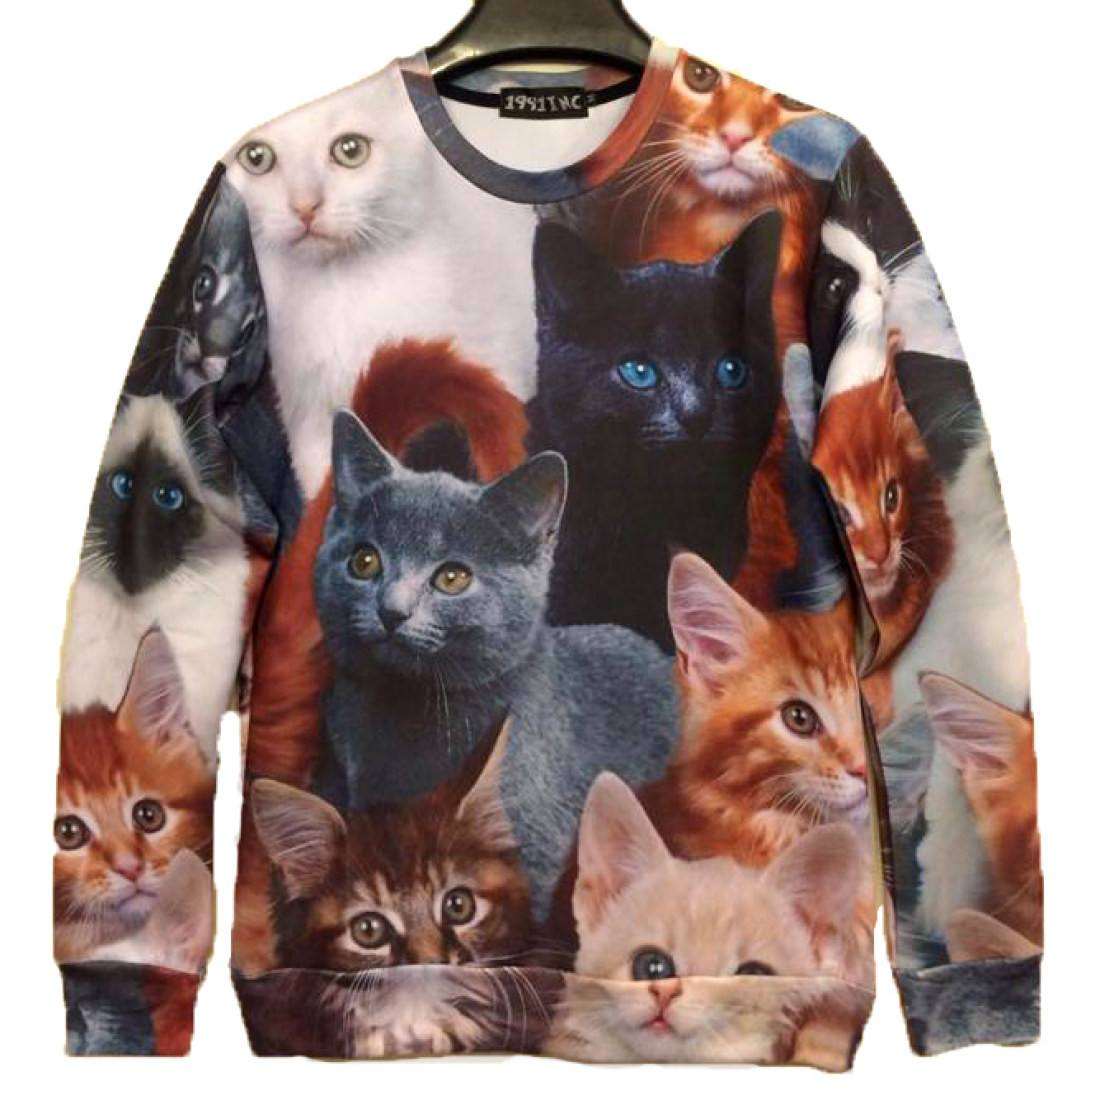 Cute Kitty Cat All Over Collage Print Sweater | Gifts for Cat Lovers